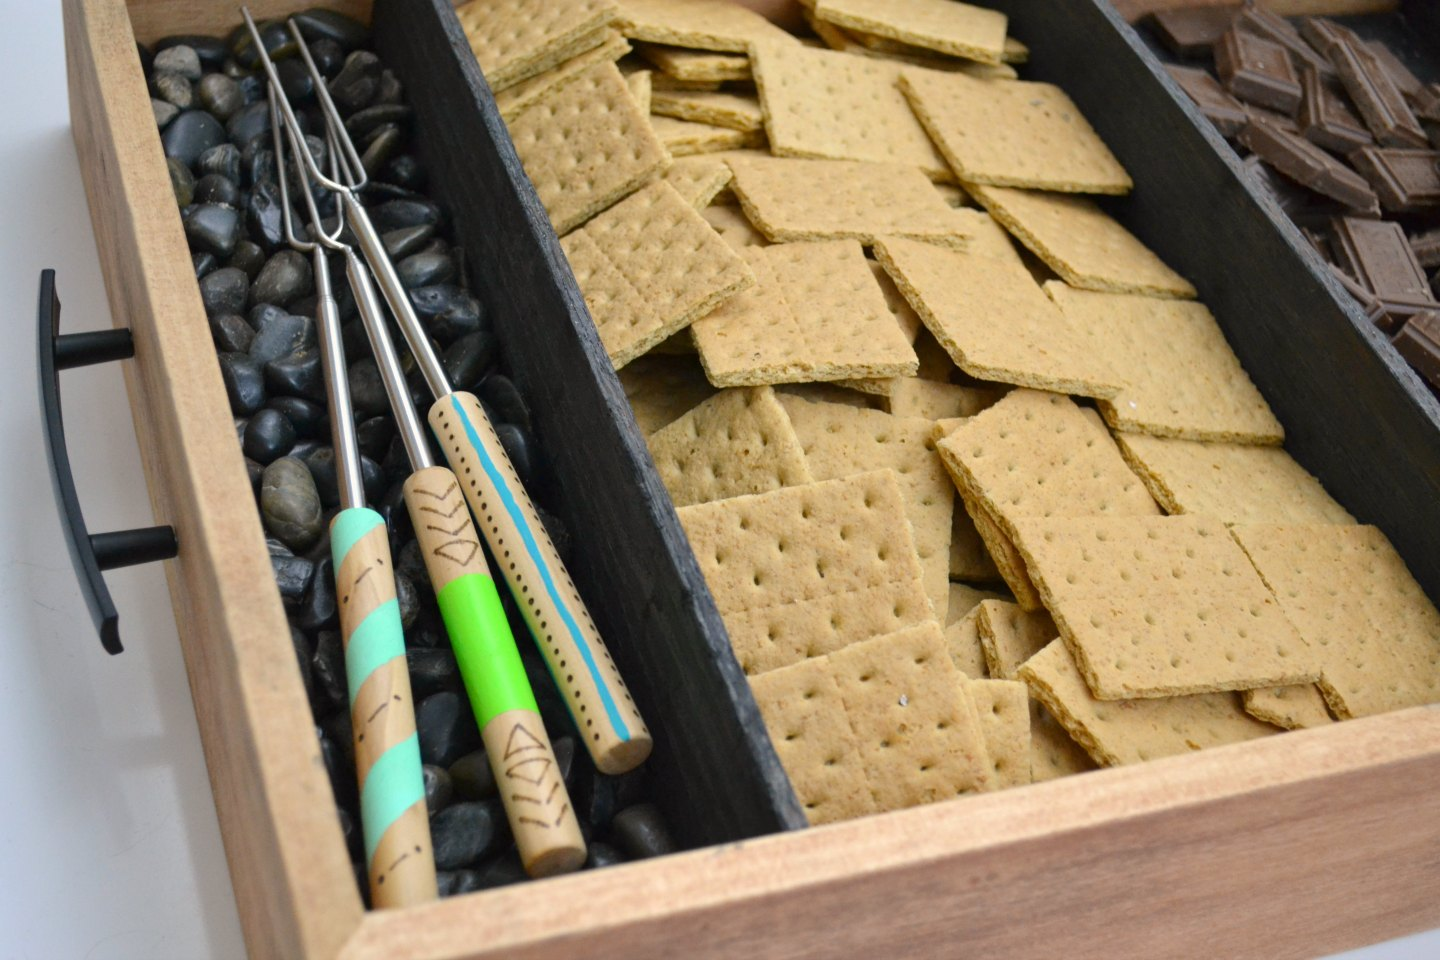 after - more personalized roasting sticks for marshmallows and smores